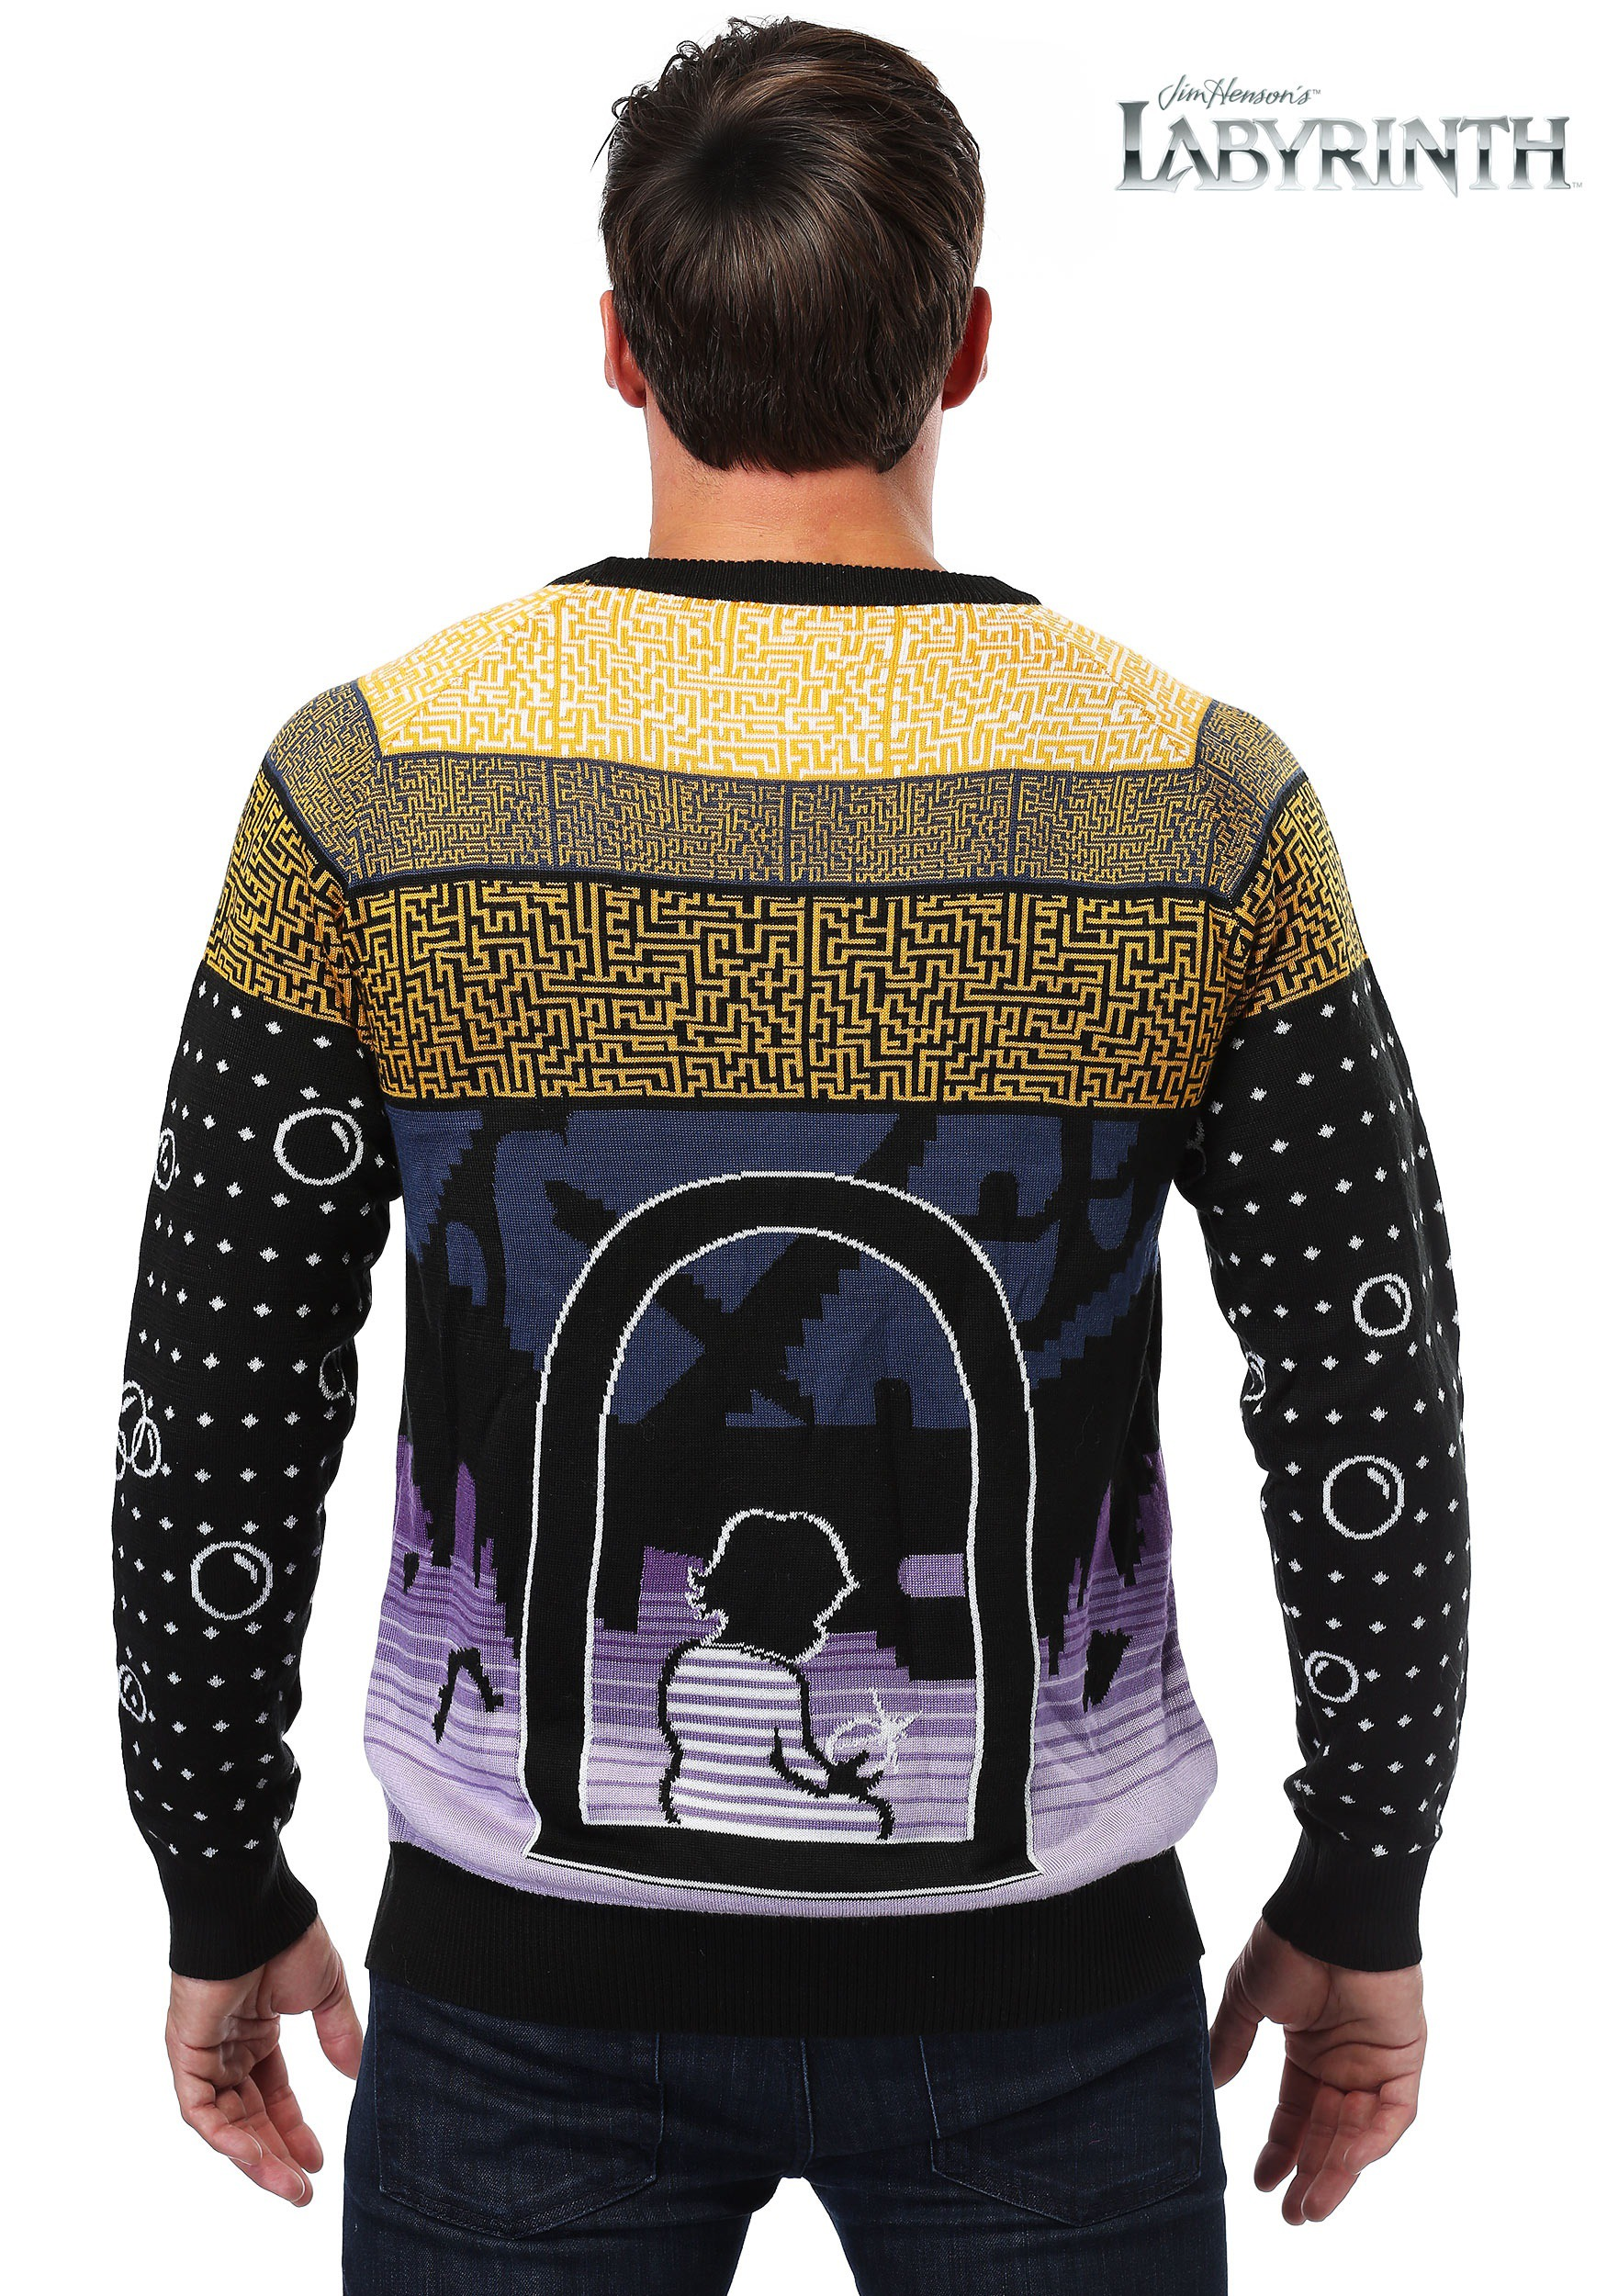 Labyrinth Christmas Jumpers